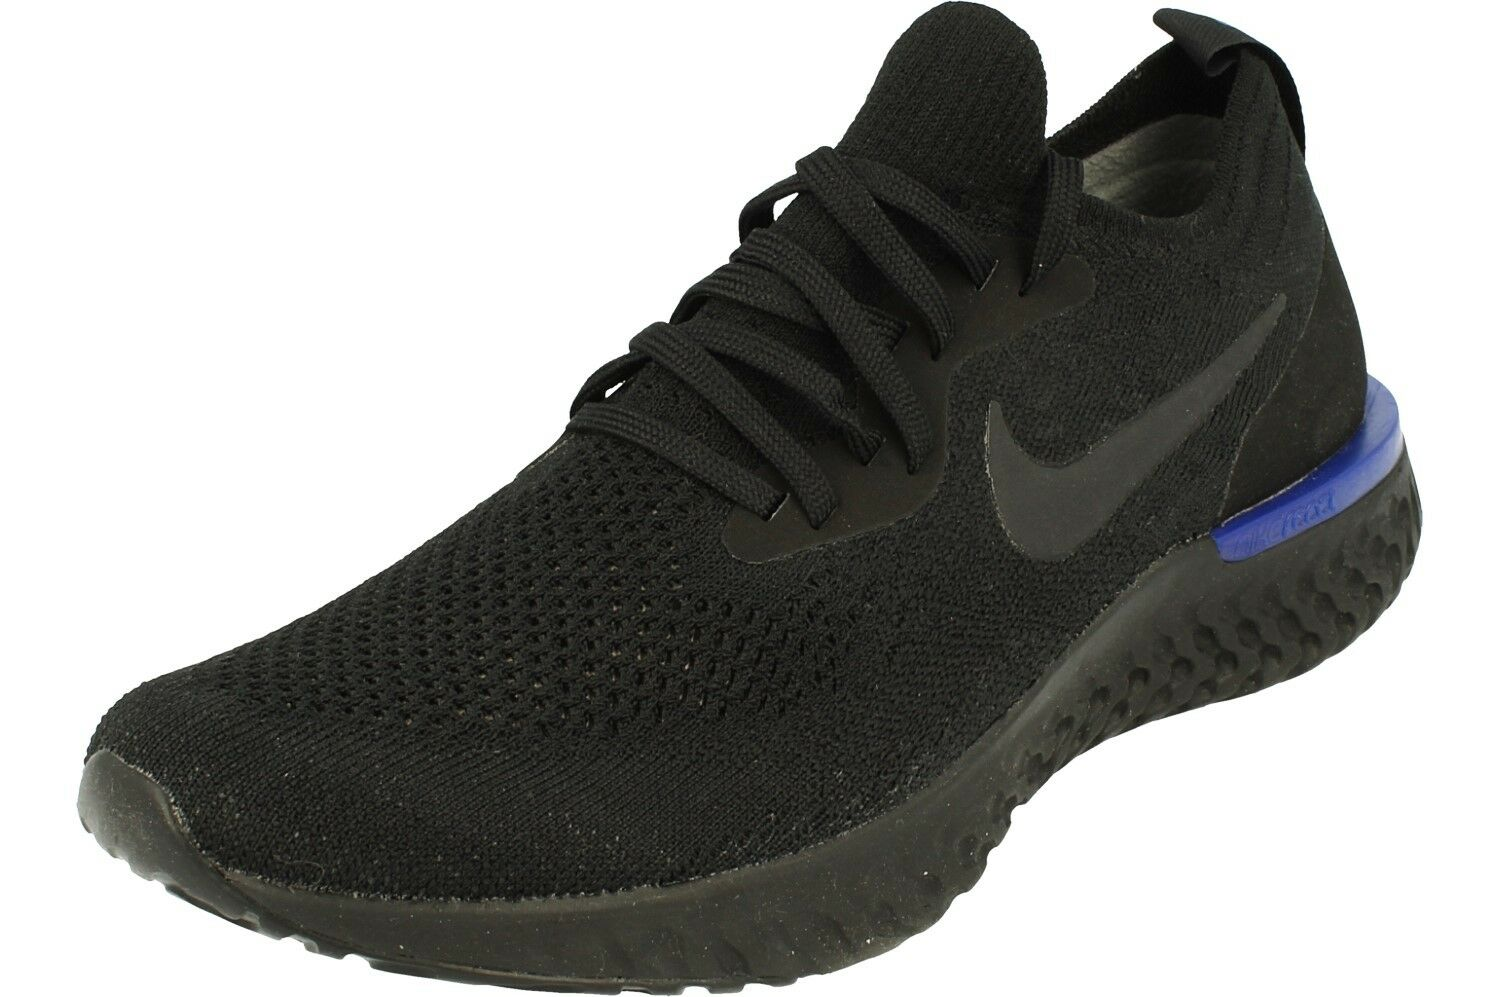 Nike Mens Epic React Flyknit Running Trainers Aq0067 Sneakers shoes 004